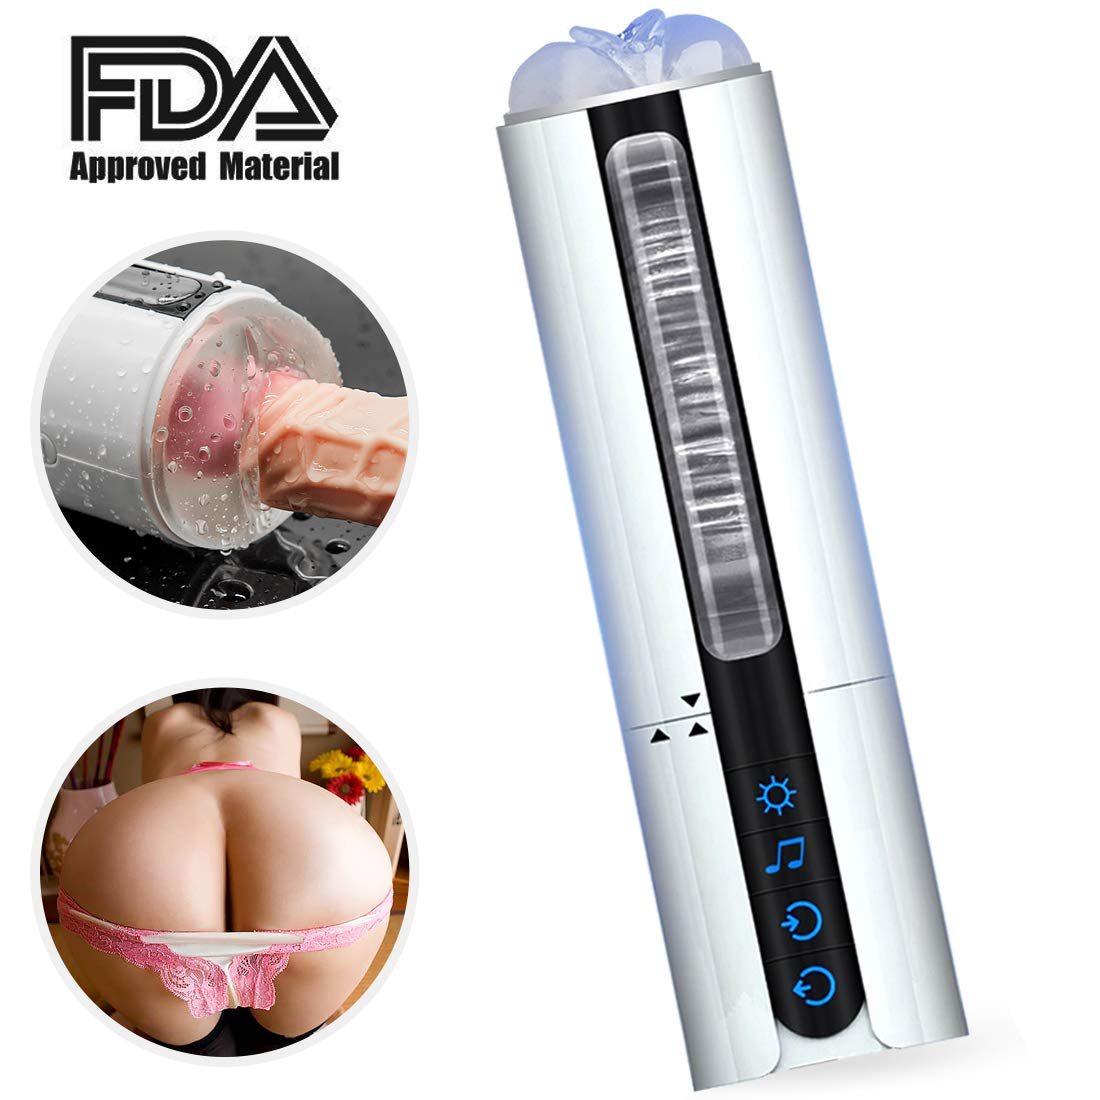 Electric Rotating and Sucking Massage Cup Telescopic Toy with Voice Interaction for Men jiyougsi